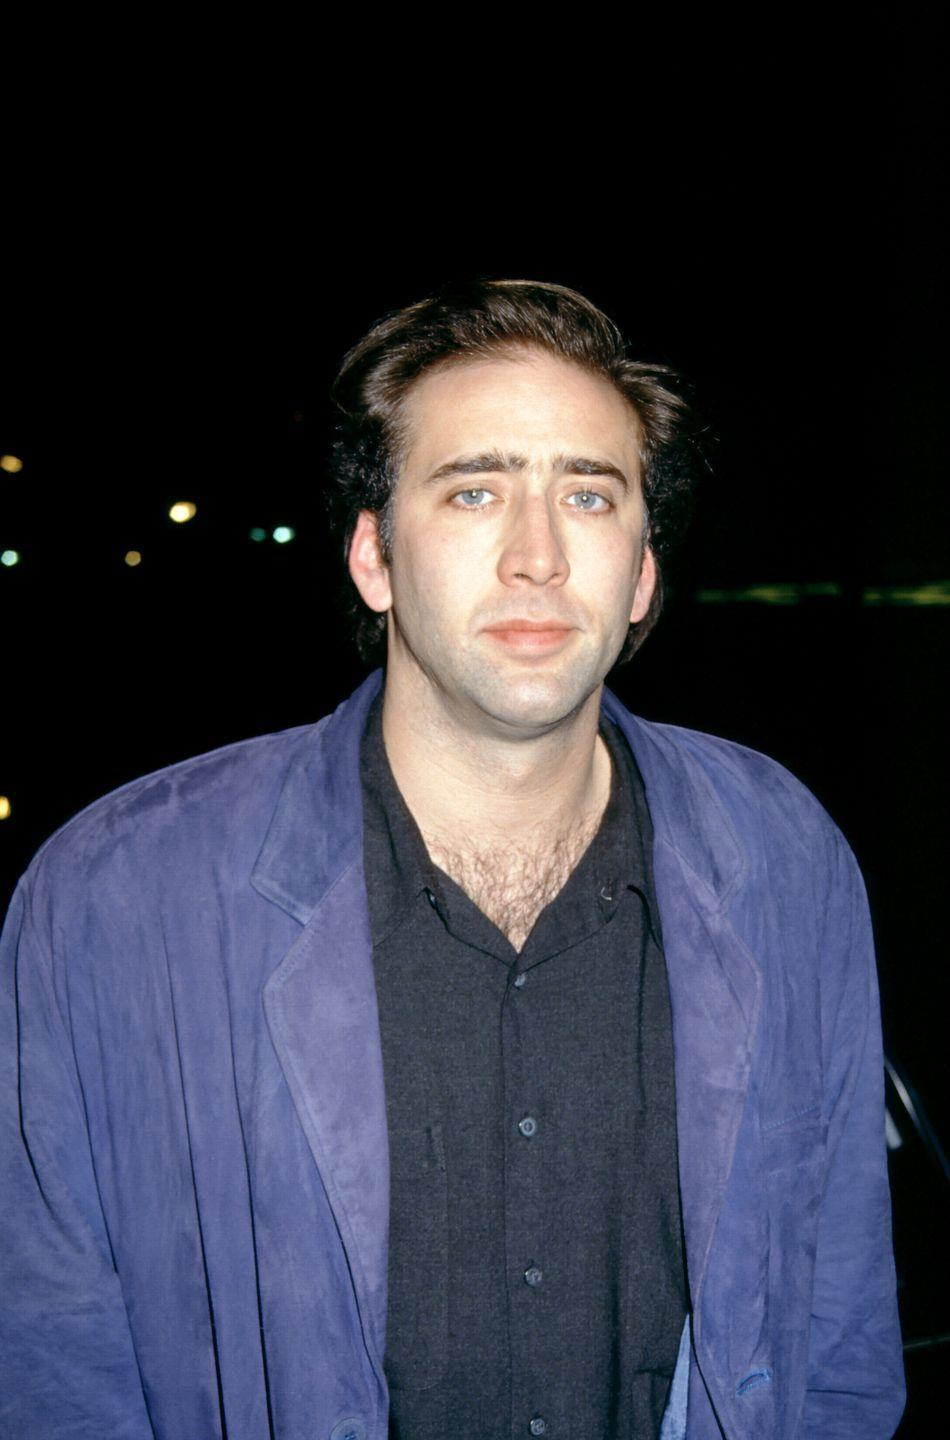 <p>Nicolas Cage in the '90s was all about the chest hair and we can see why. It was quite a look.</p>